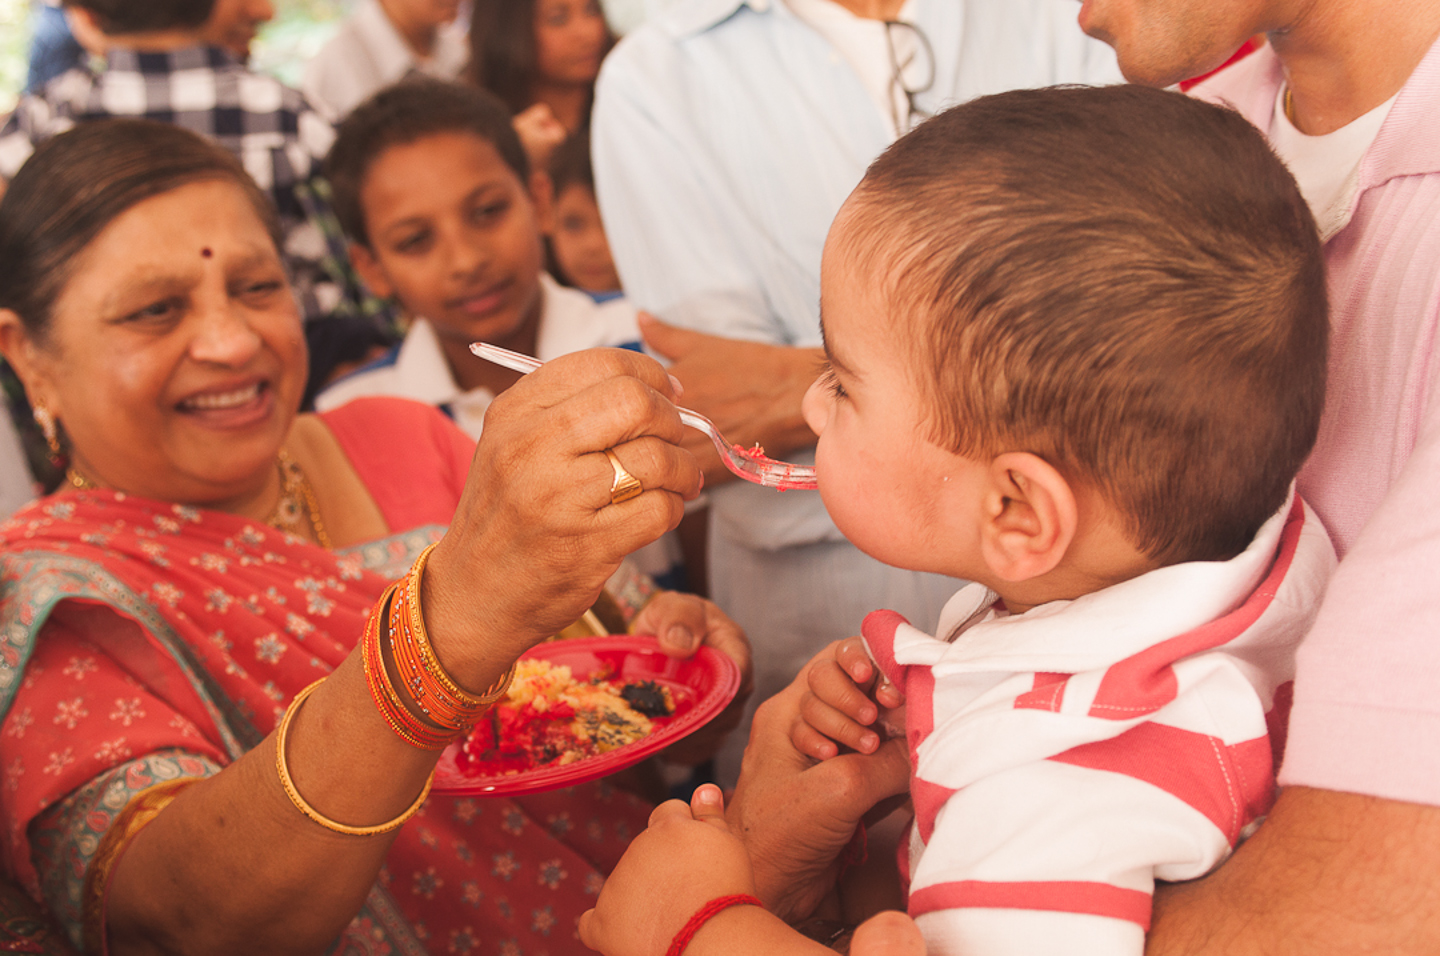 mithun-first-birthday-party-event-photography-long-island-ny-first-birthday-0077.jpg